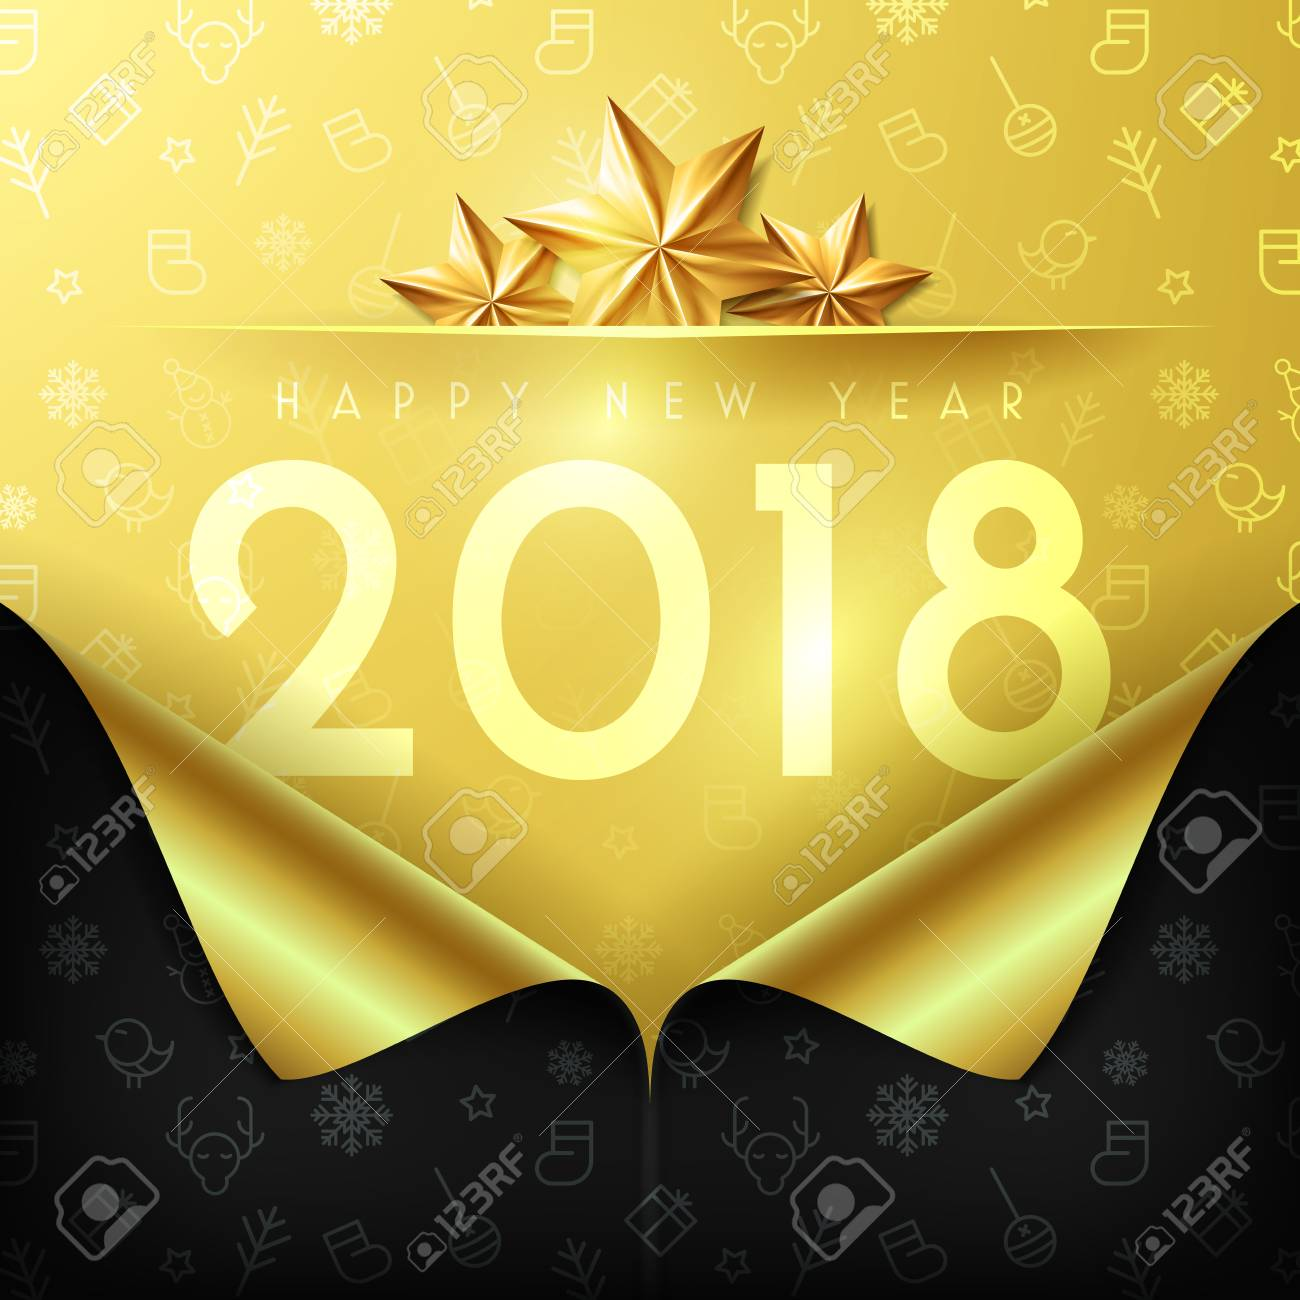 happy new year 2018 poster and template with open new year gift wrap paper concept